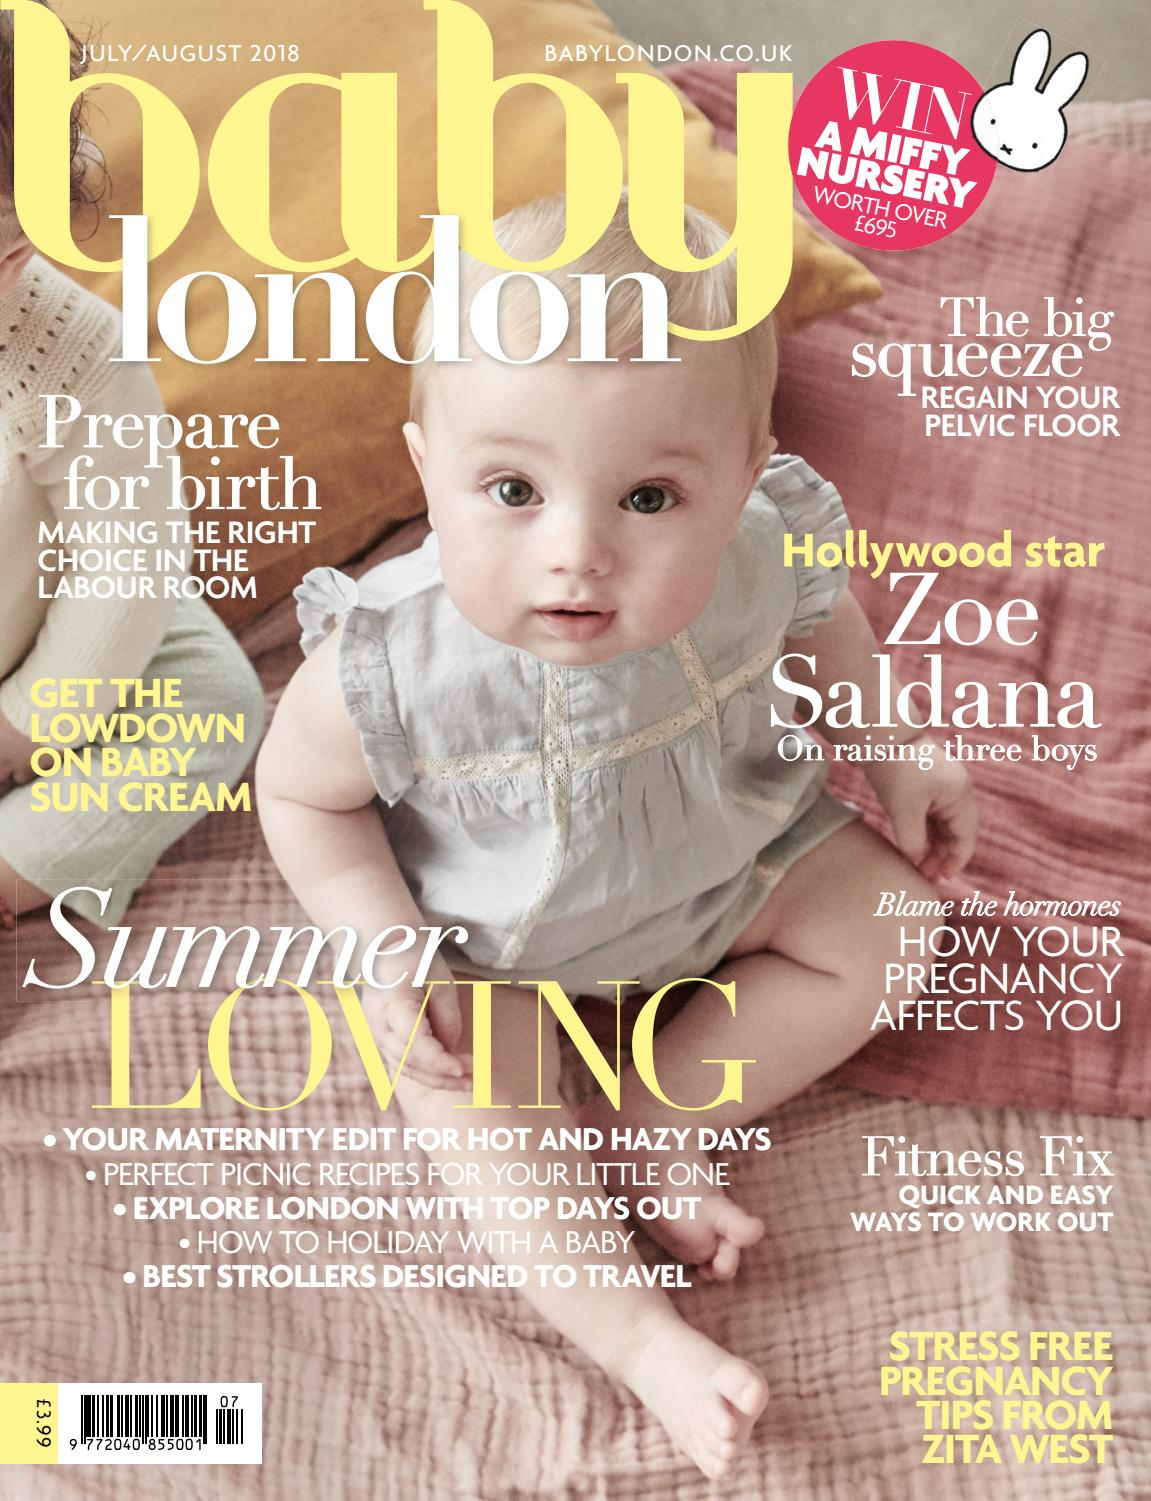 505e104b93f Baby London July/August 2018 by The Chelsea Magazine Company - issuu